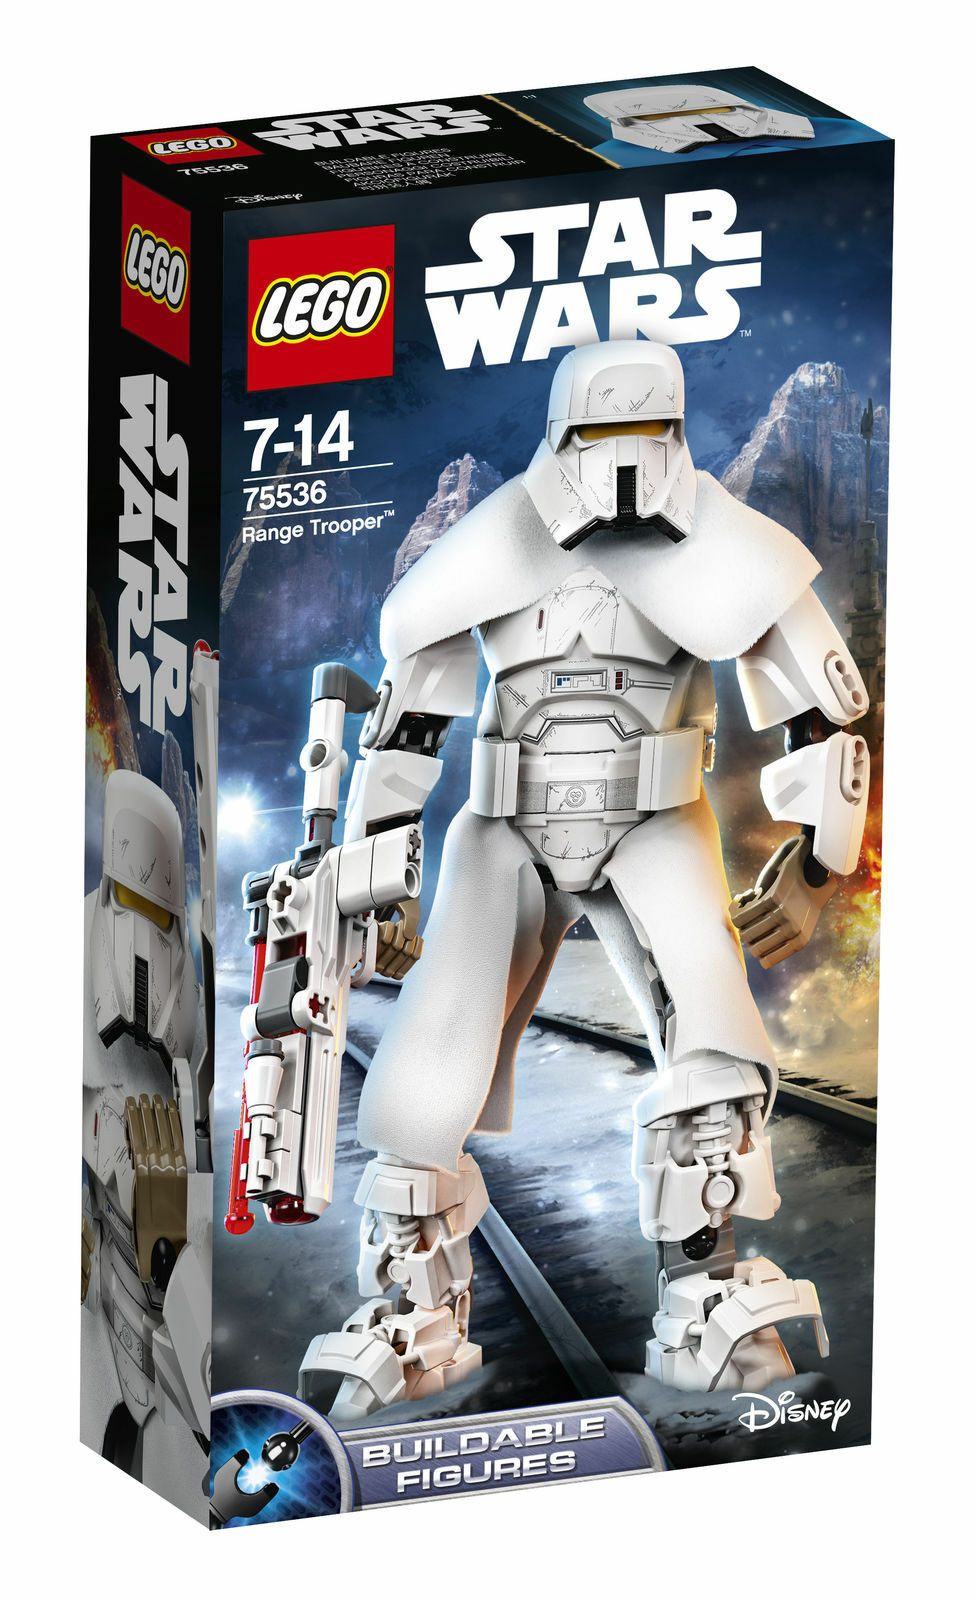 LEGO Star Wars Range Trooper 2018